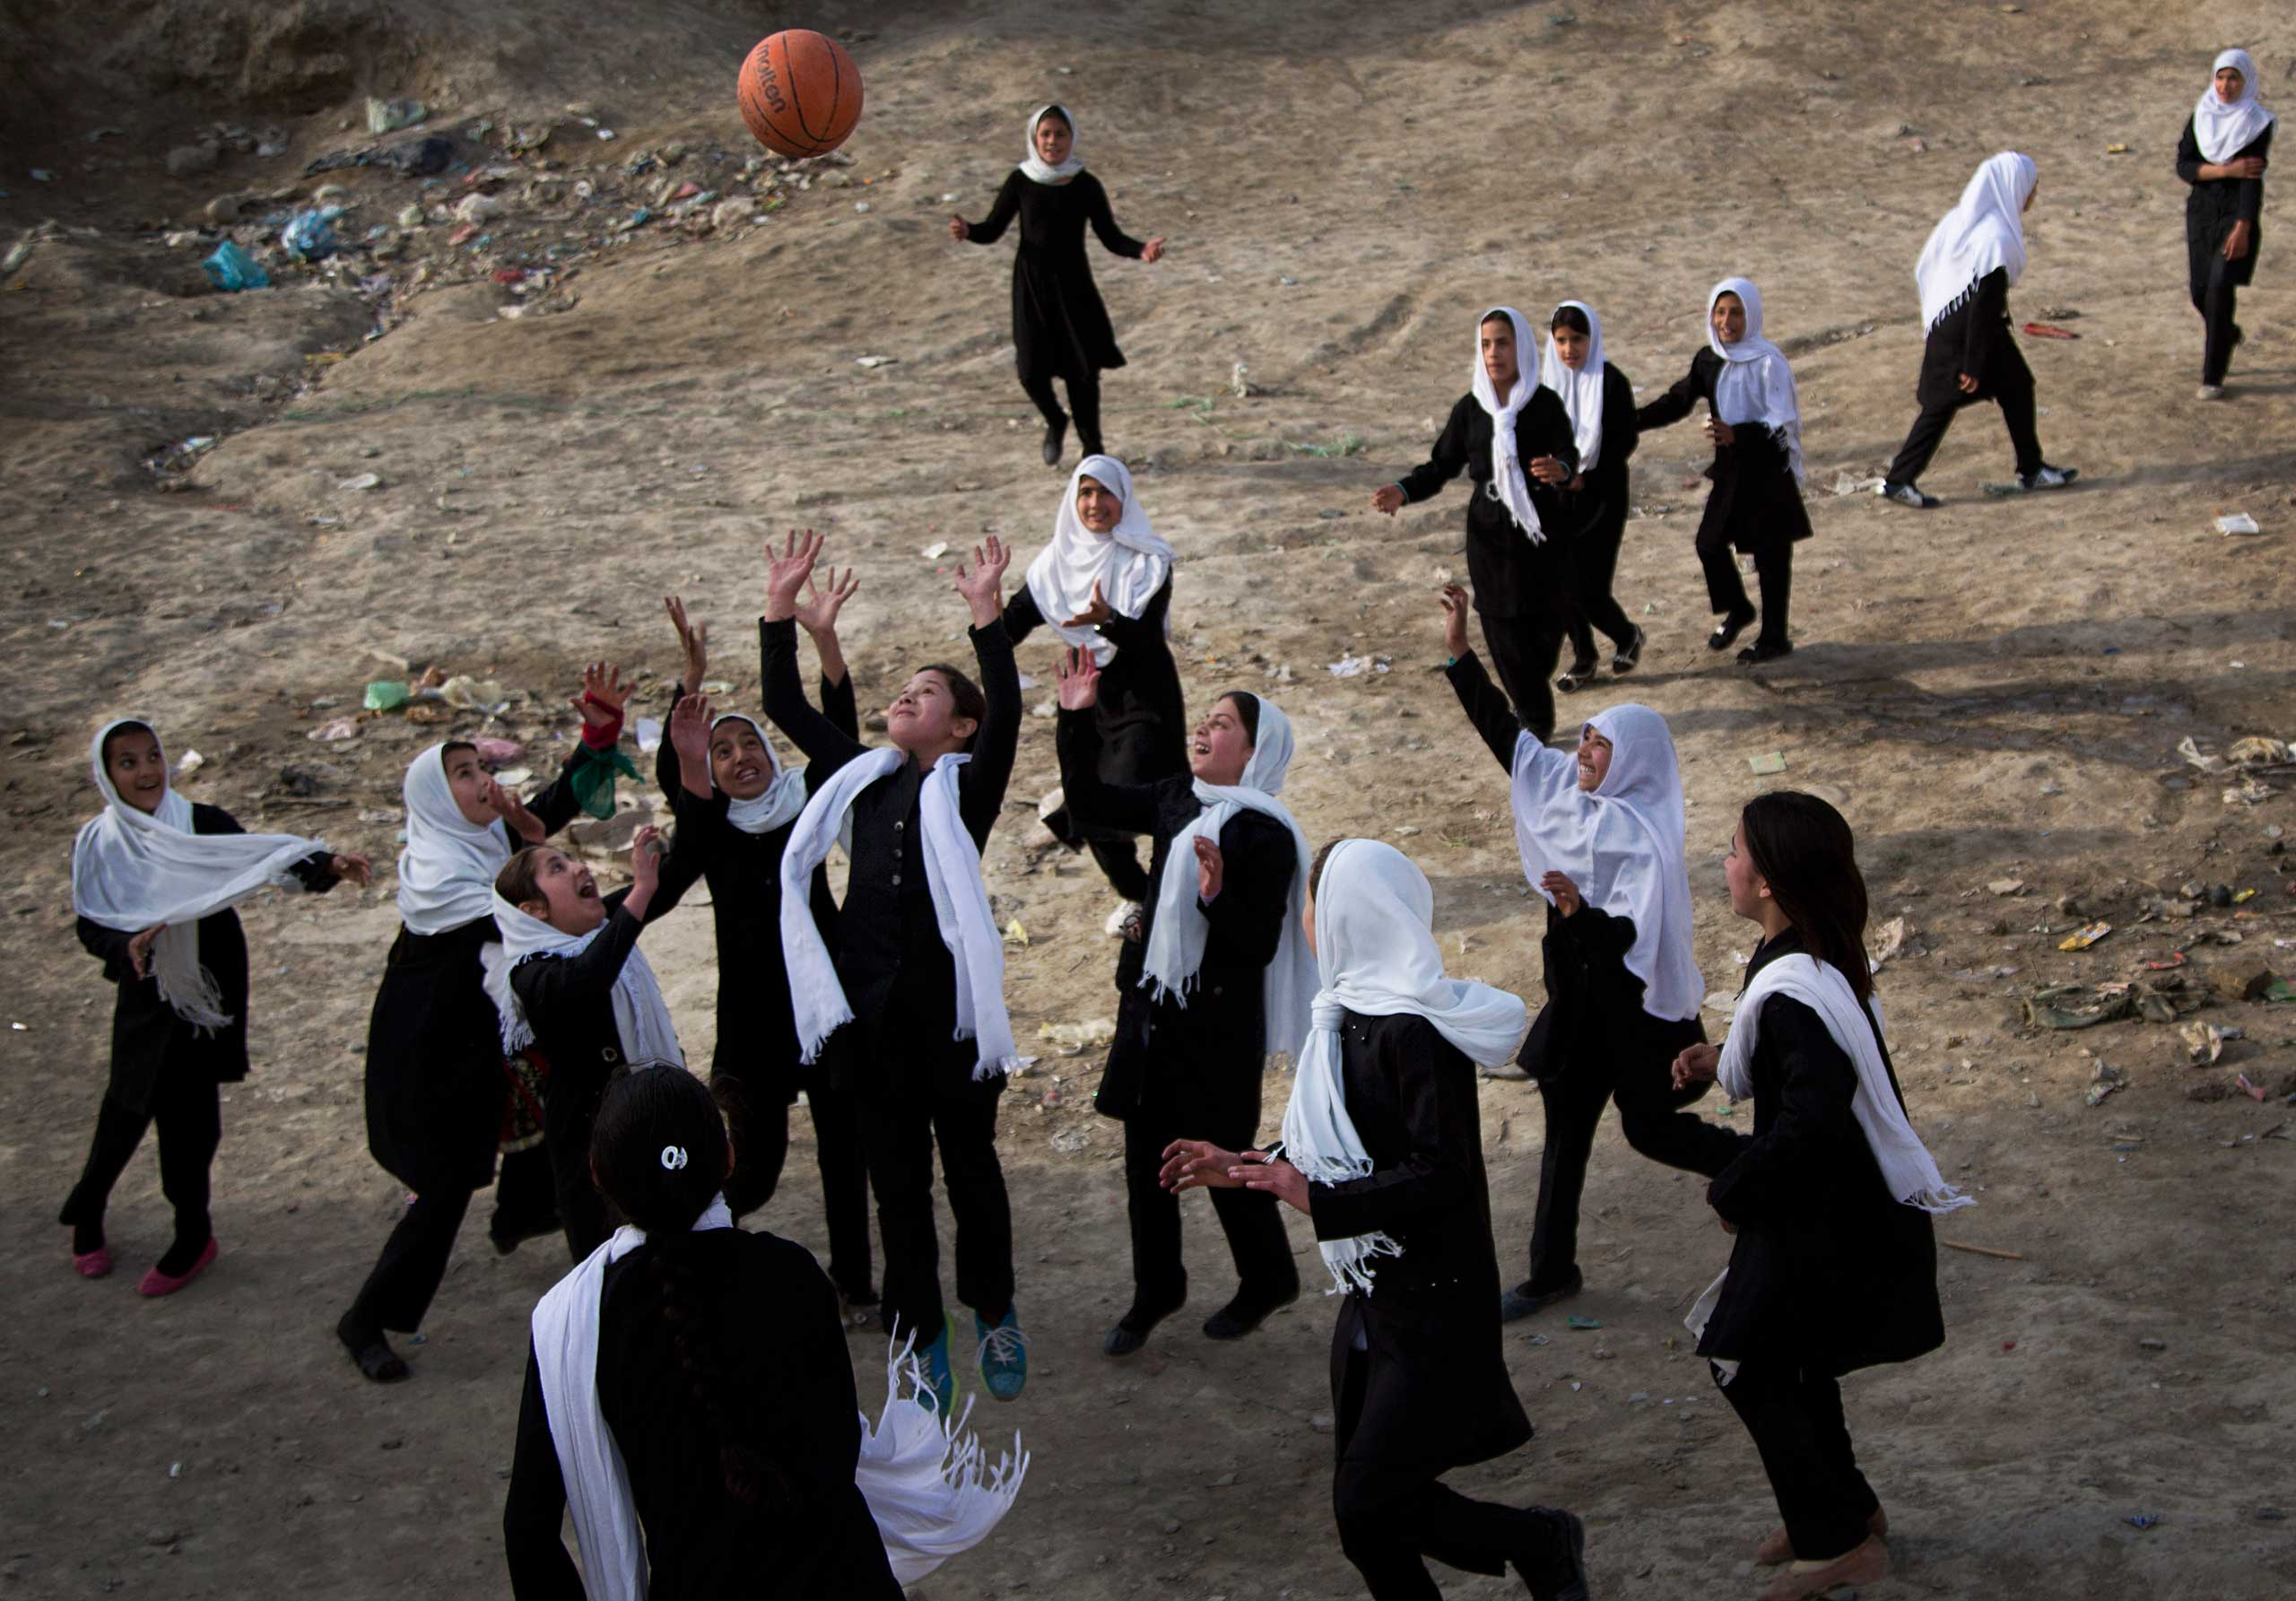 Afghani schoolgirls play volleyball with a basketball during a break at their girls school in the old town of Kabul, April 7, 2013.